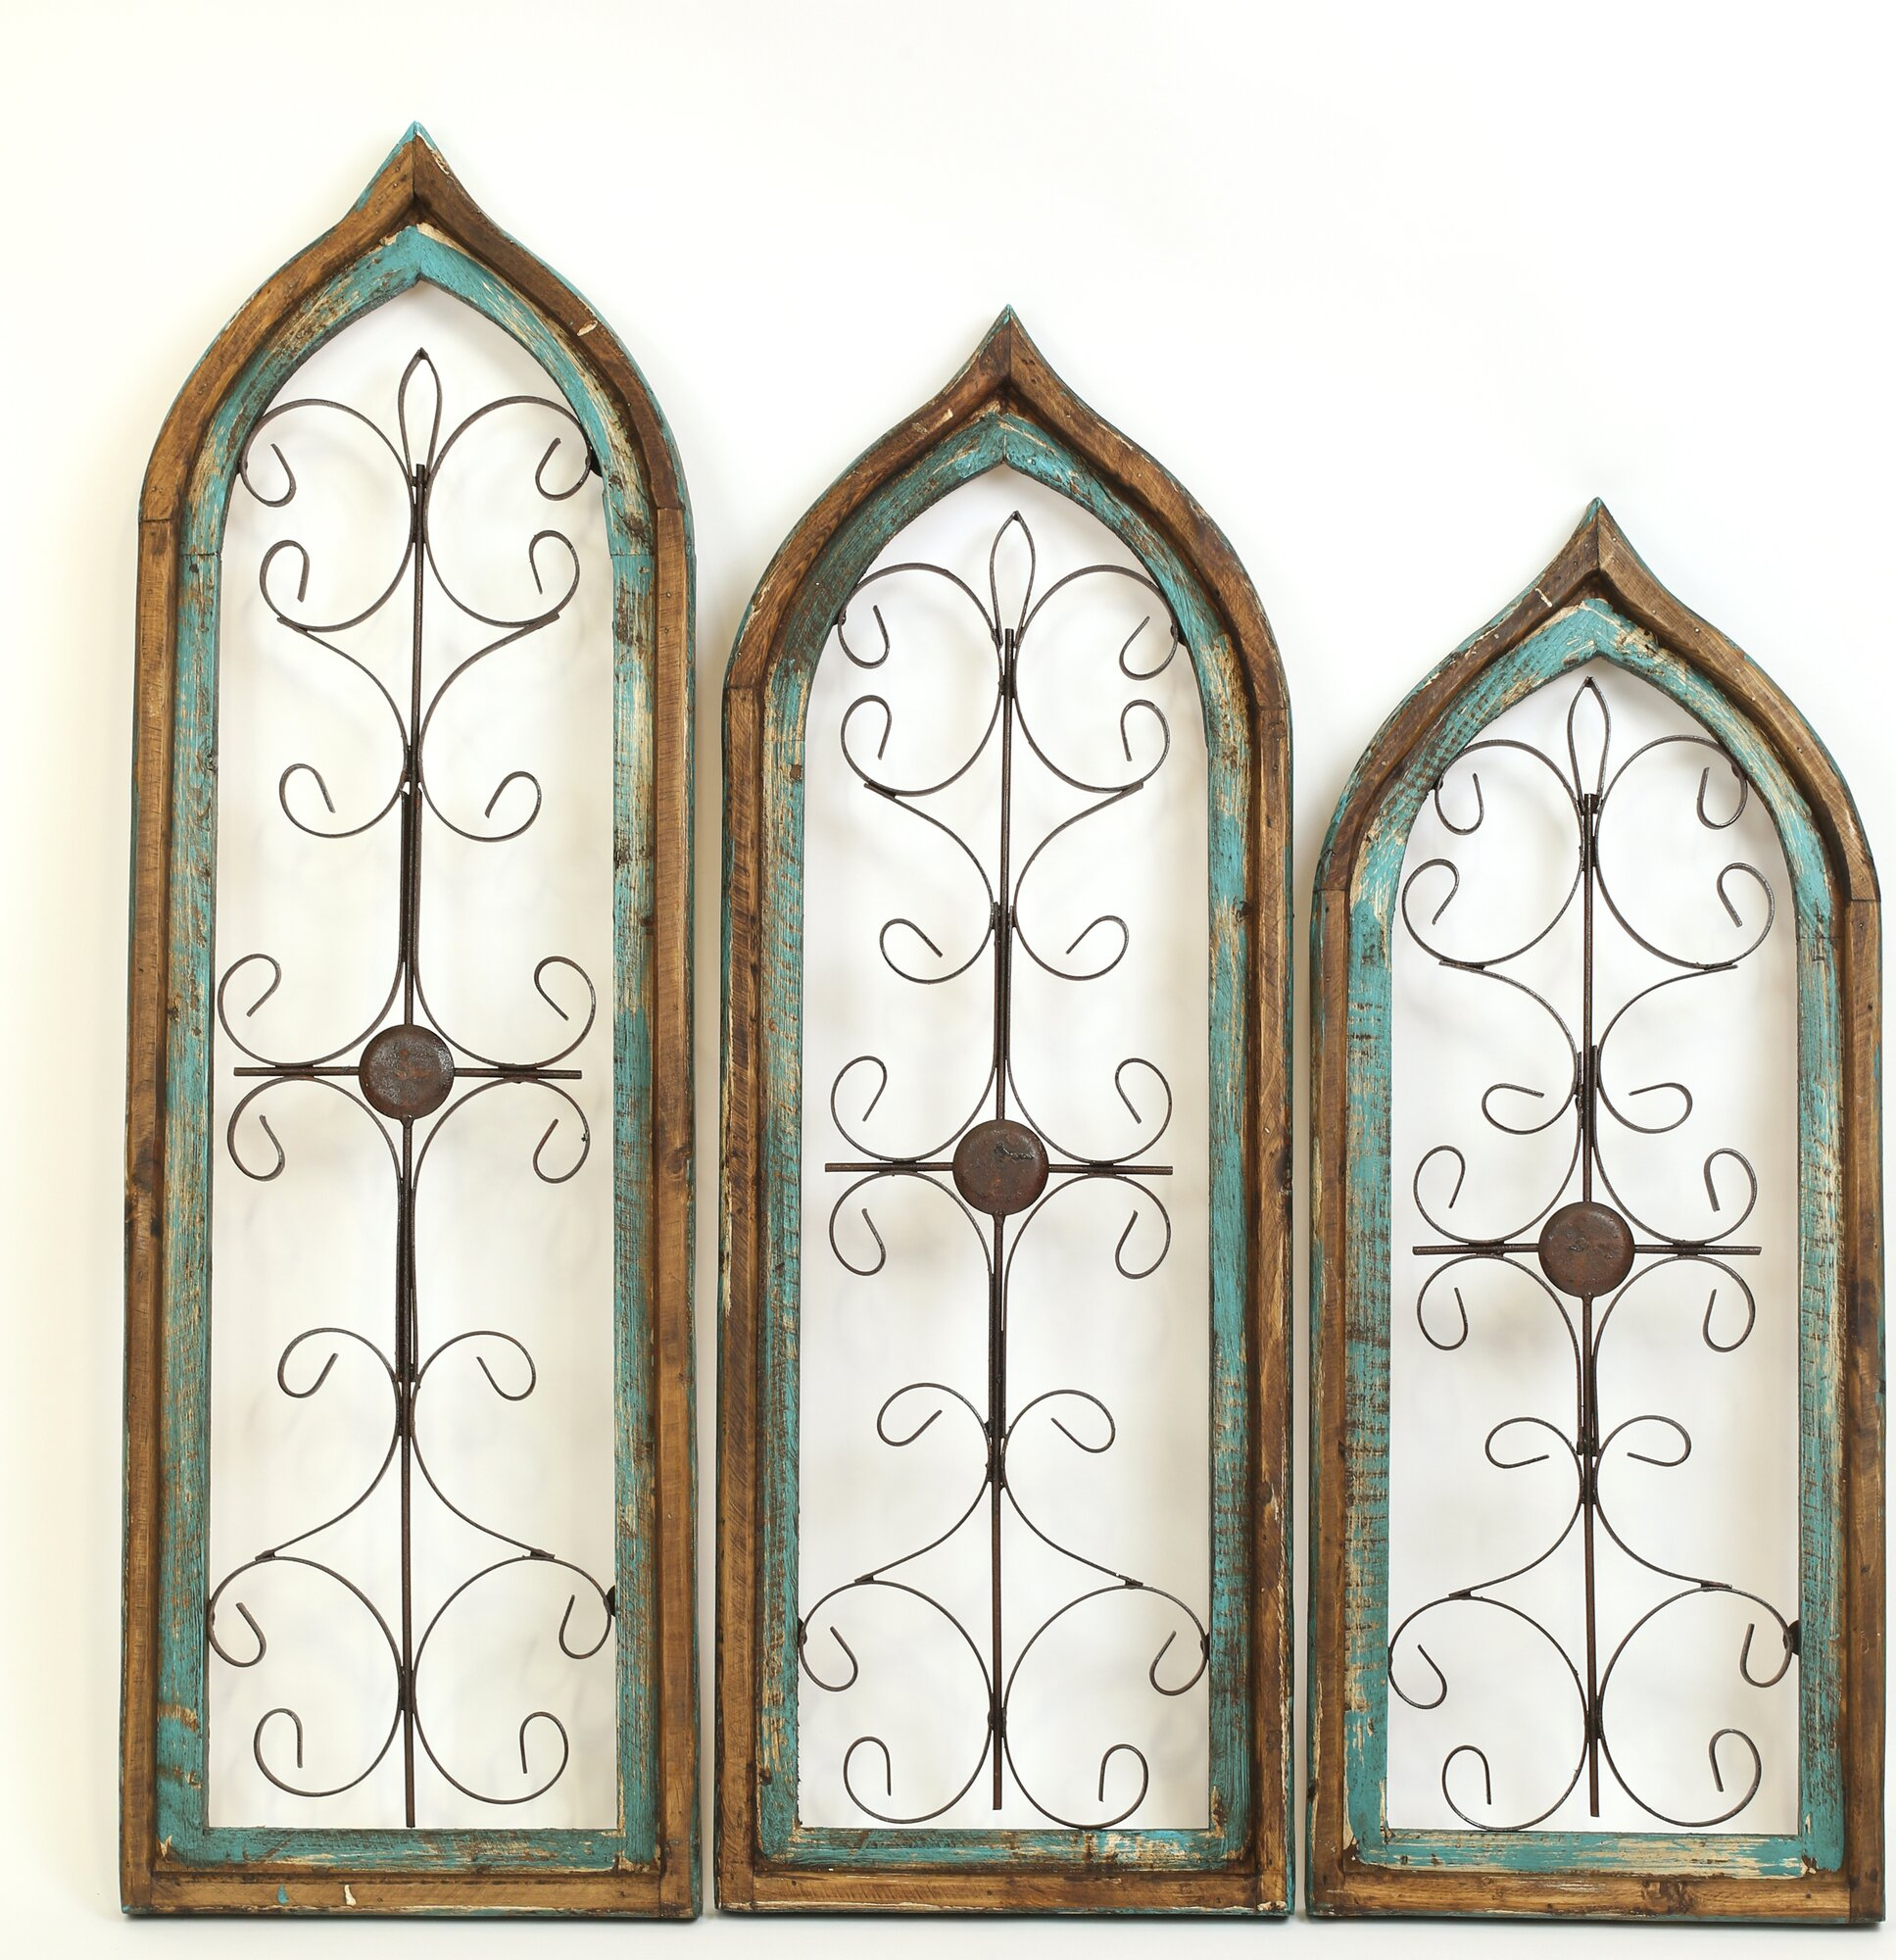 Window Wall Art : My amigos imports gothic piece architectural window wall